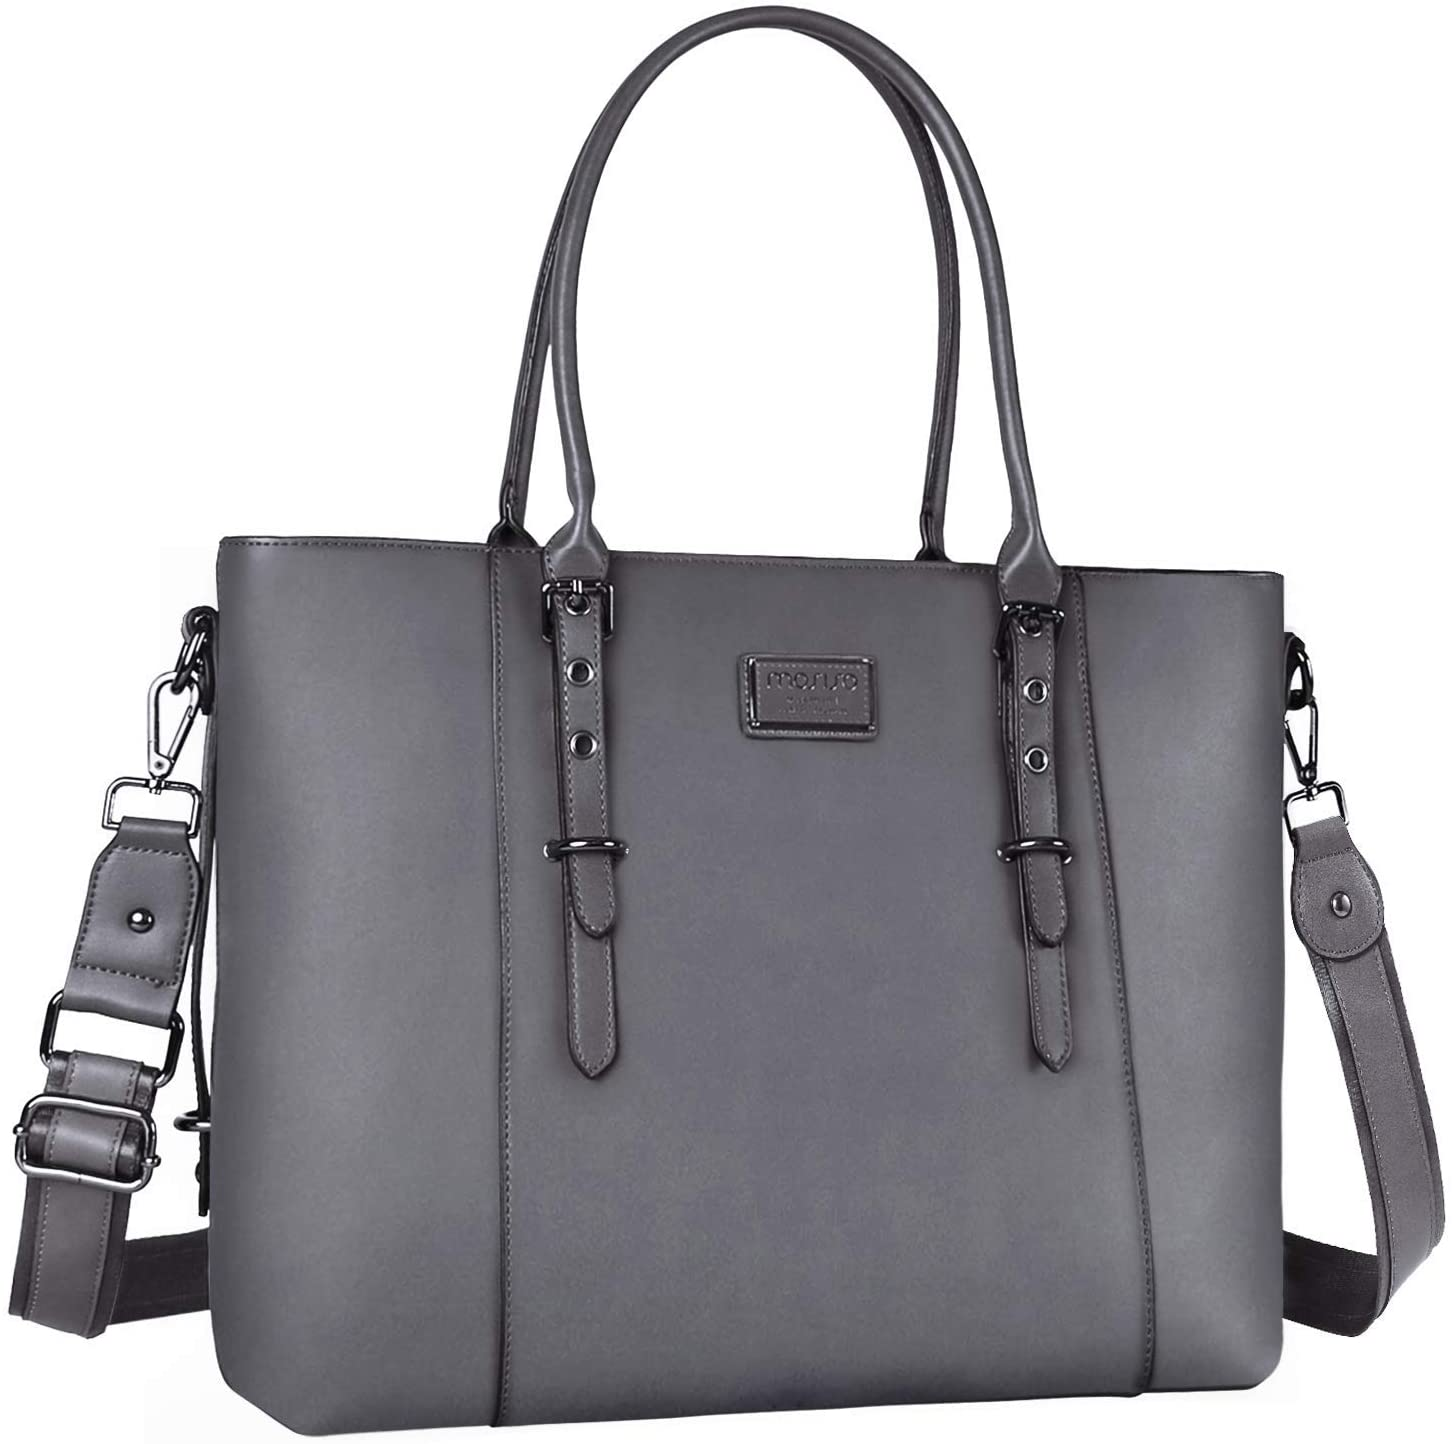 MOSISO PU Leather Laptop Tote Bag for Women (Up to 13.3 inch), Gray